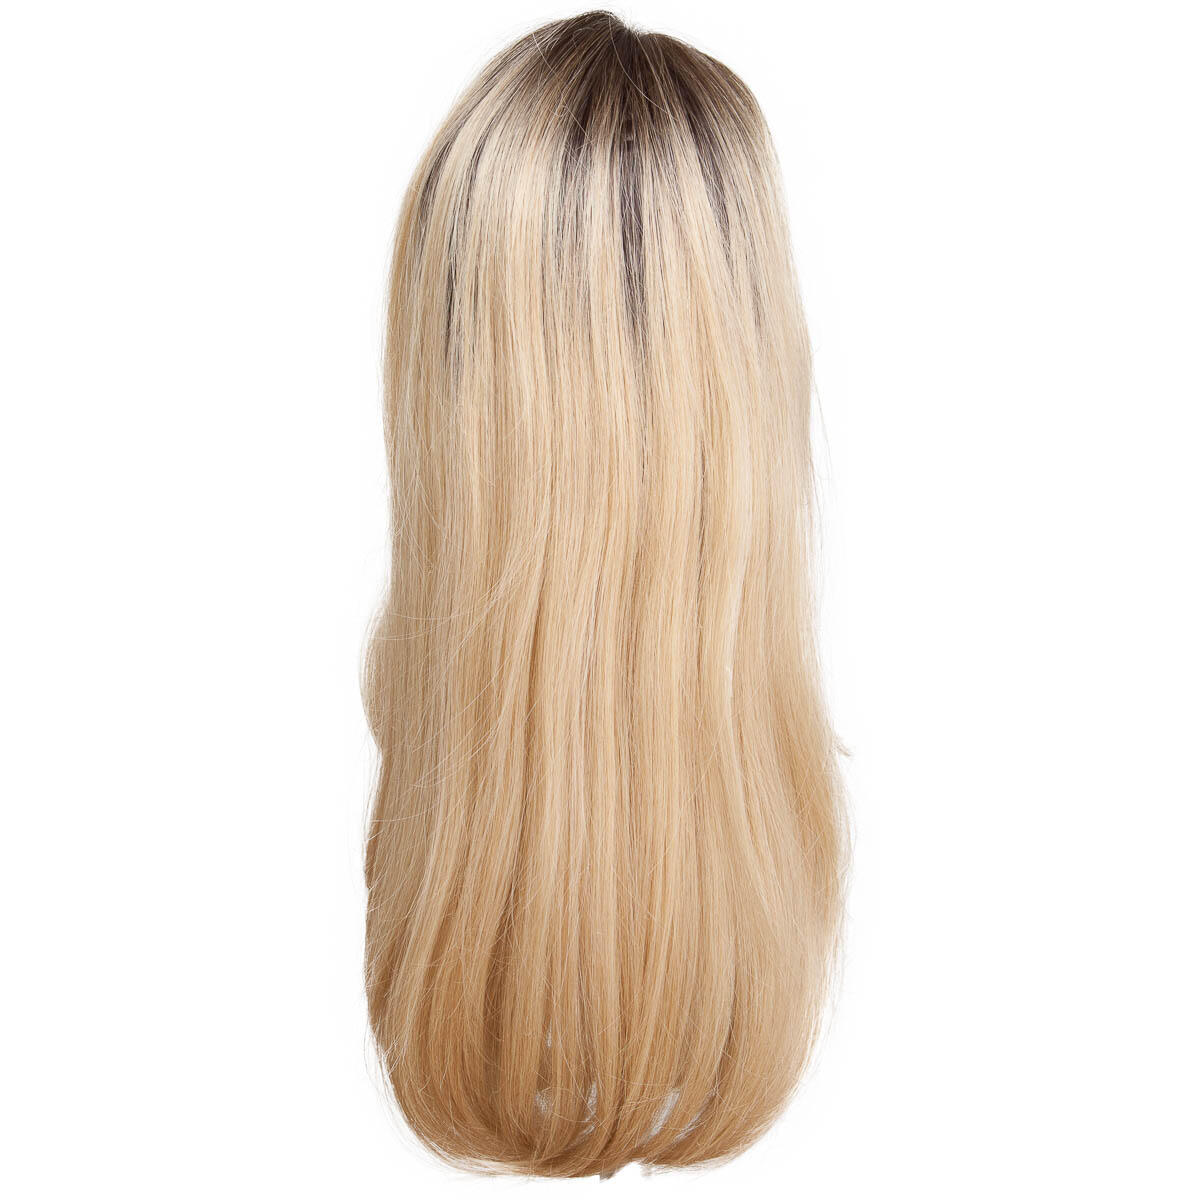 Lace Front Wig Long O2.3/9.0 Chocolate Brown/Scandinavian Blond 60 cm